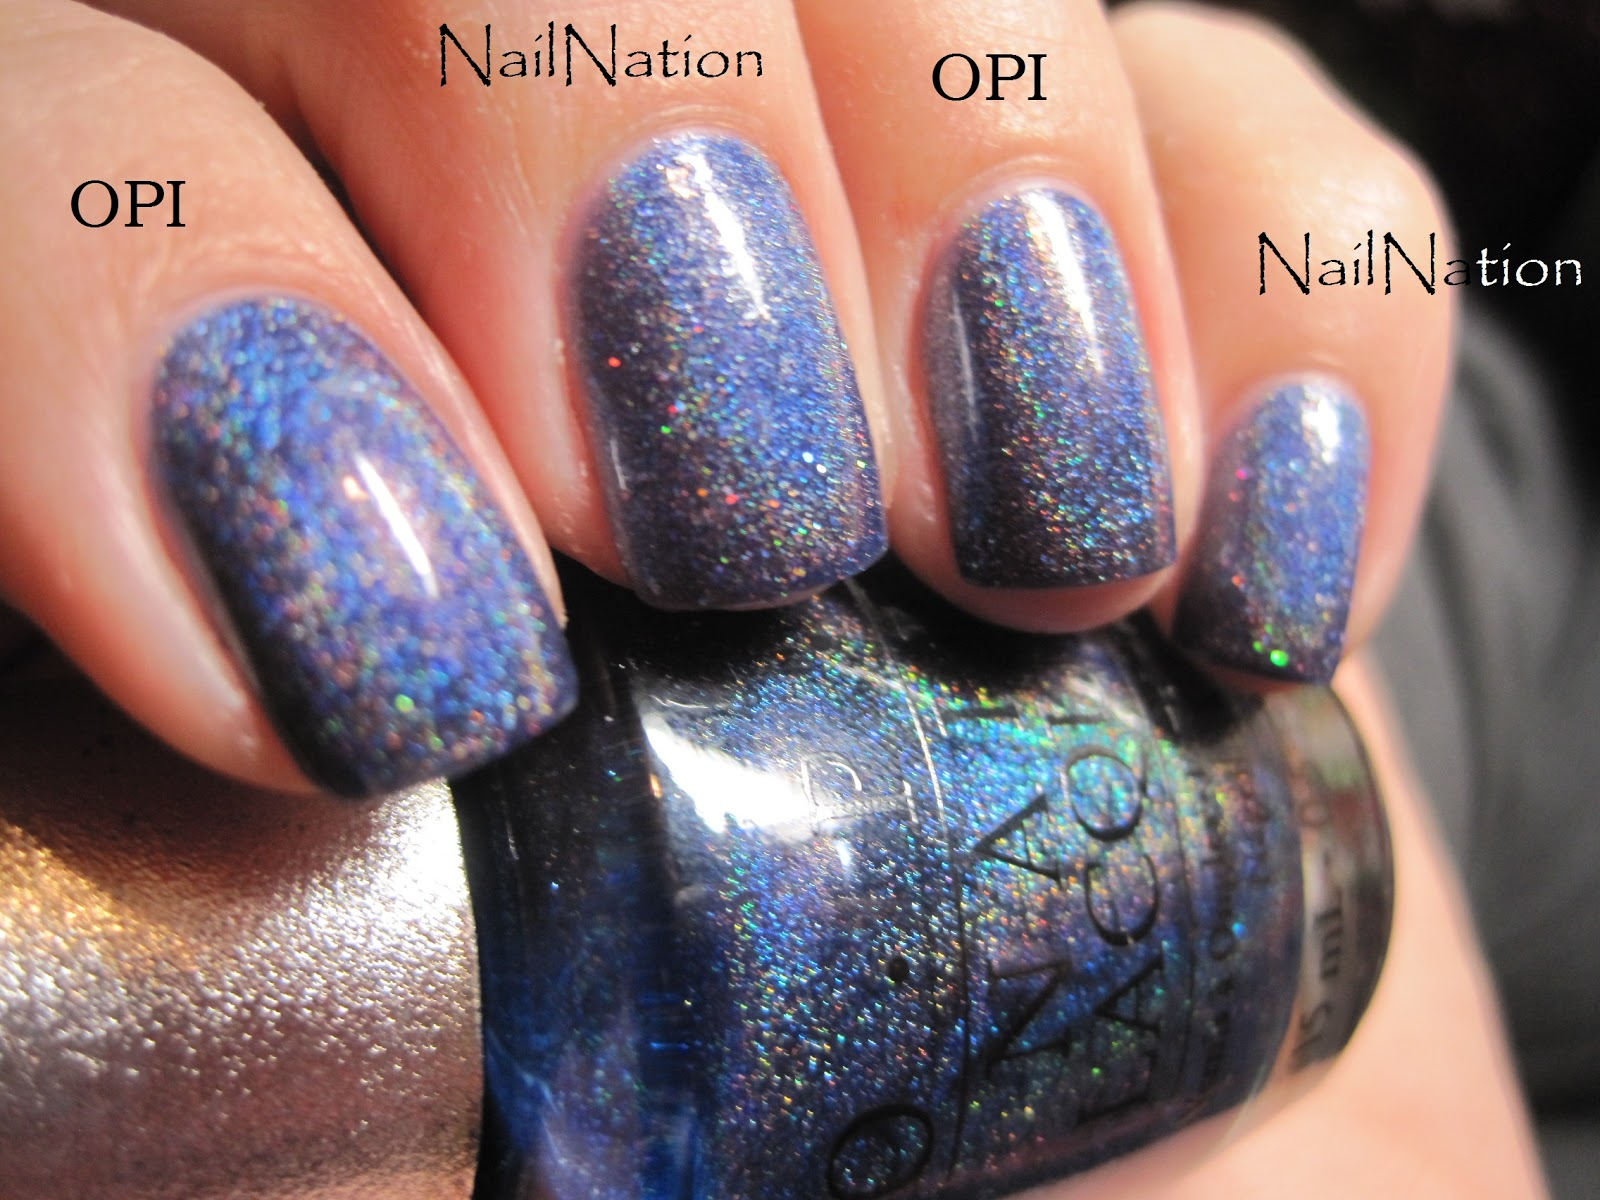 Sparkly Vernis: Nail Nation Eve vs. OPI DS Glamour Comparison